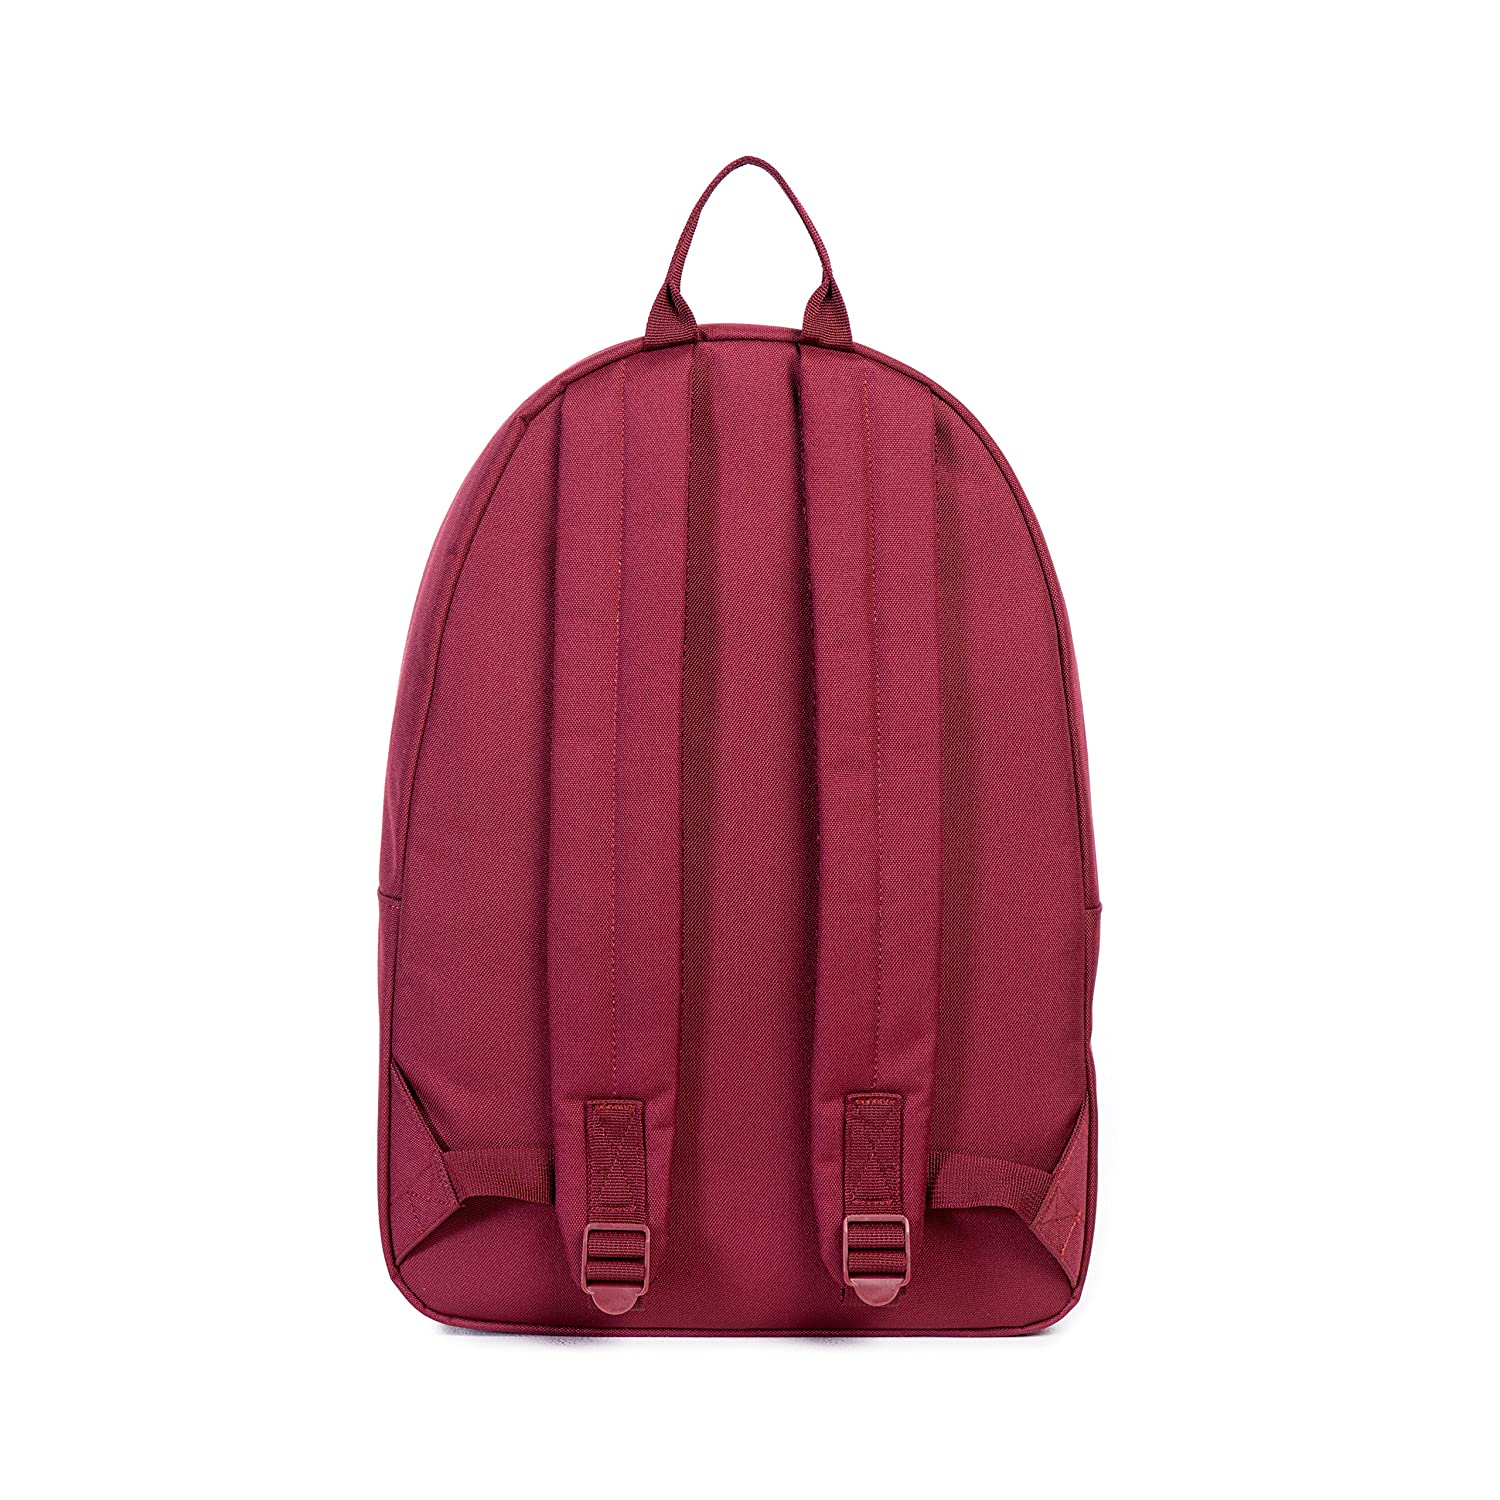 MAROON One Size Parkland Luggage Child Code 20002-00044-OS Parkland Meadow Backpack